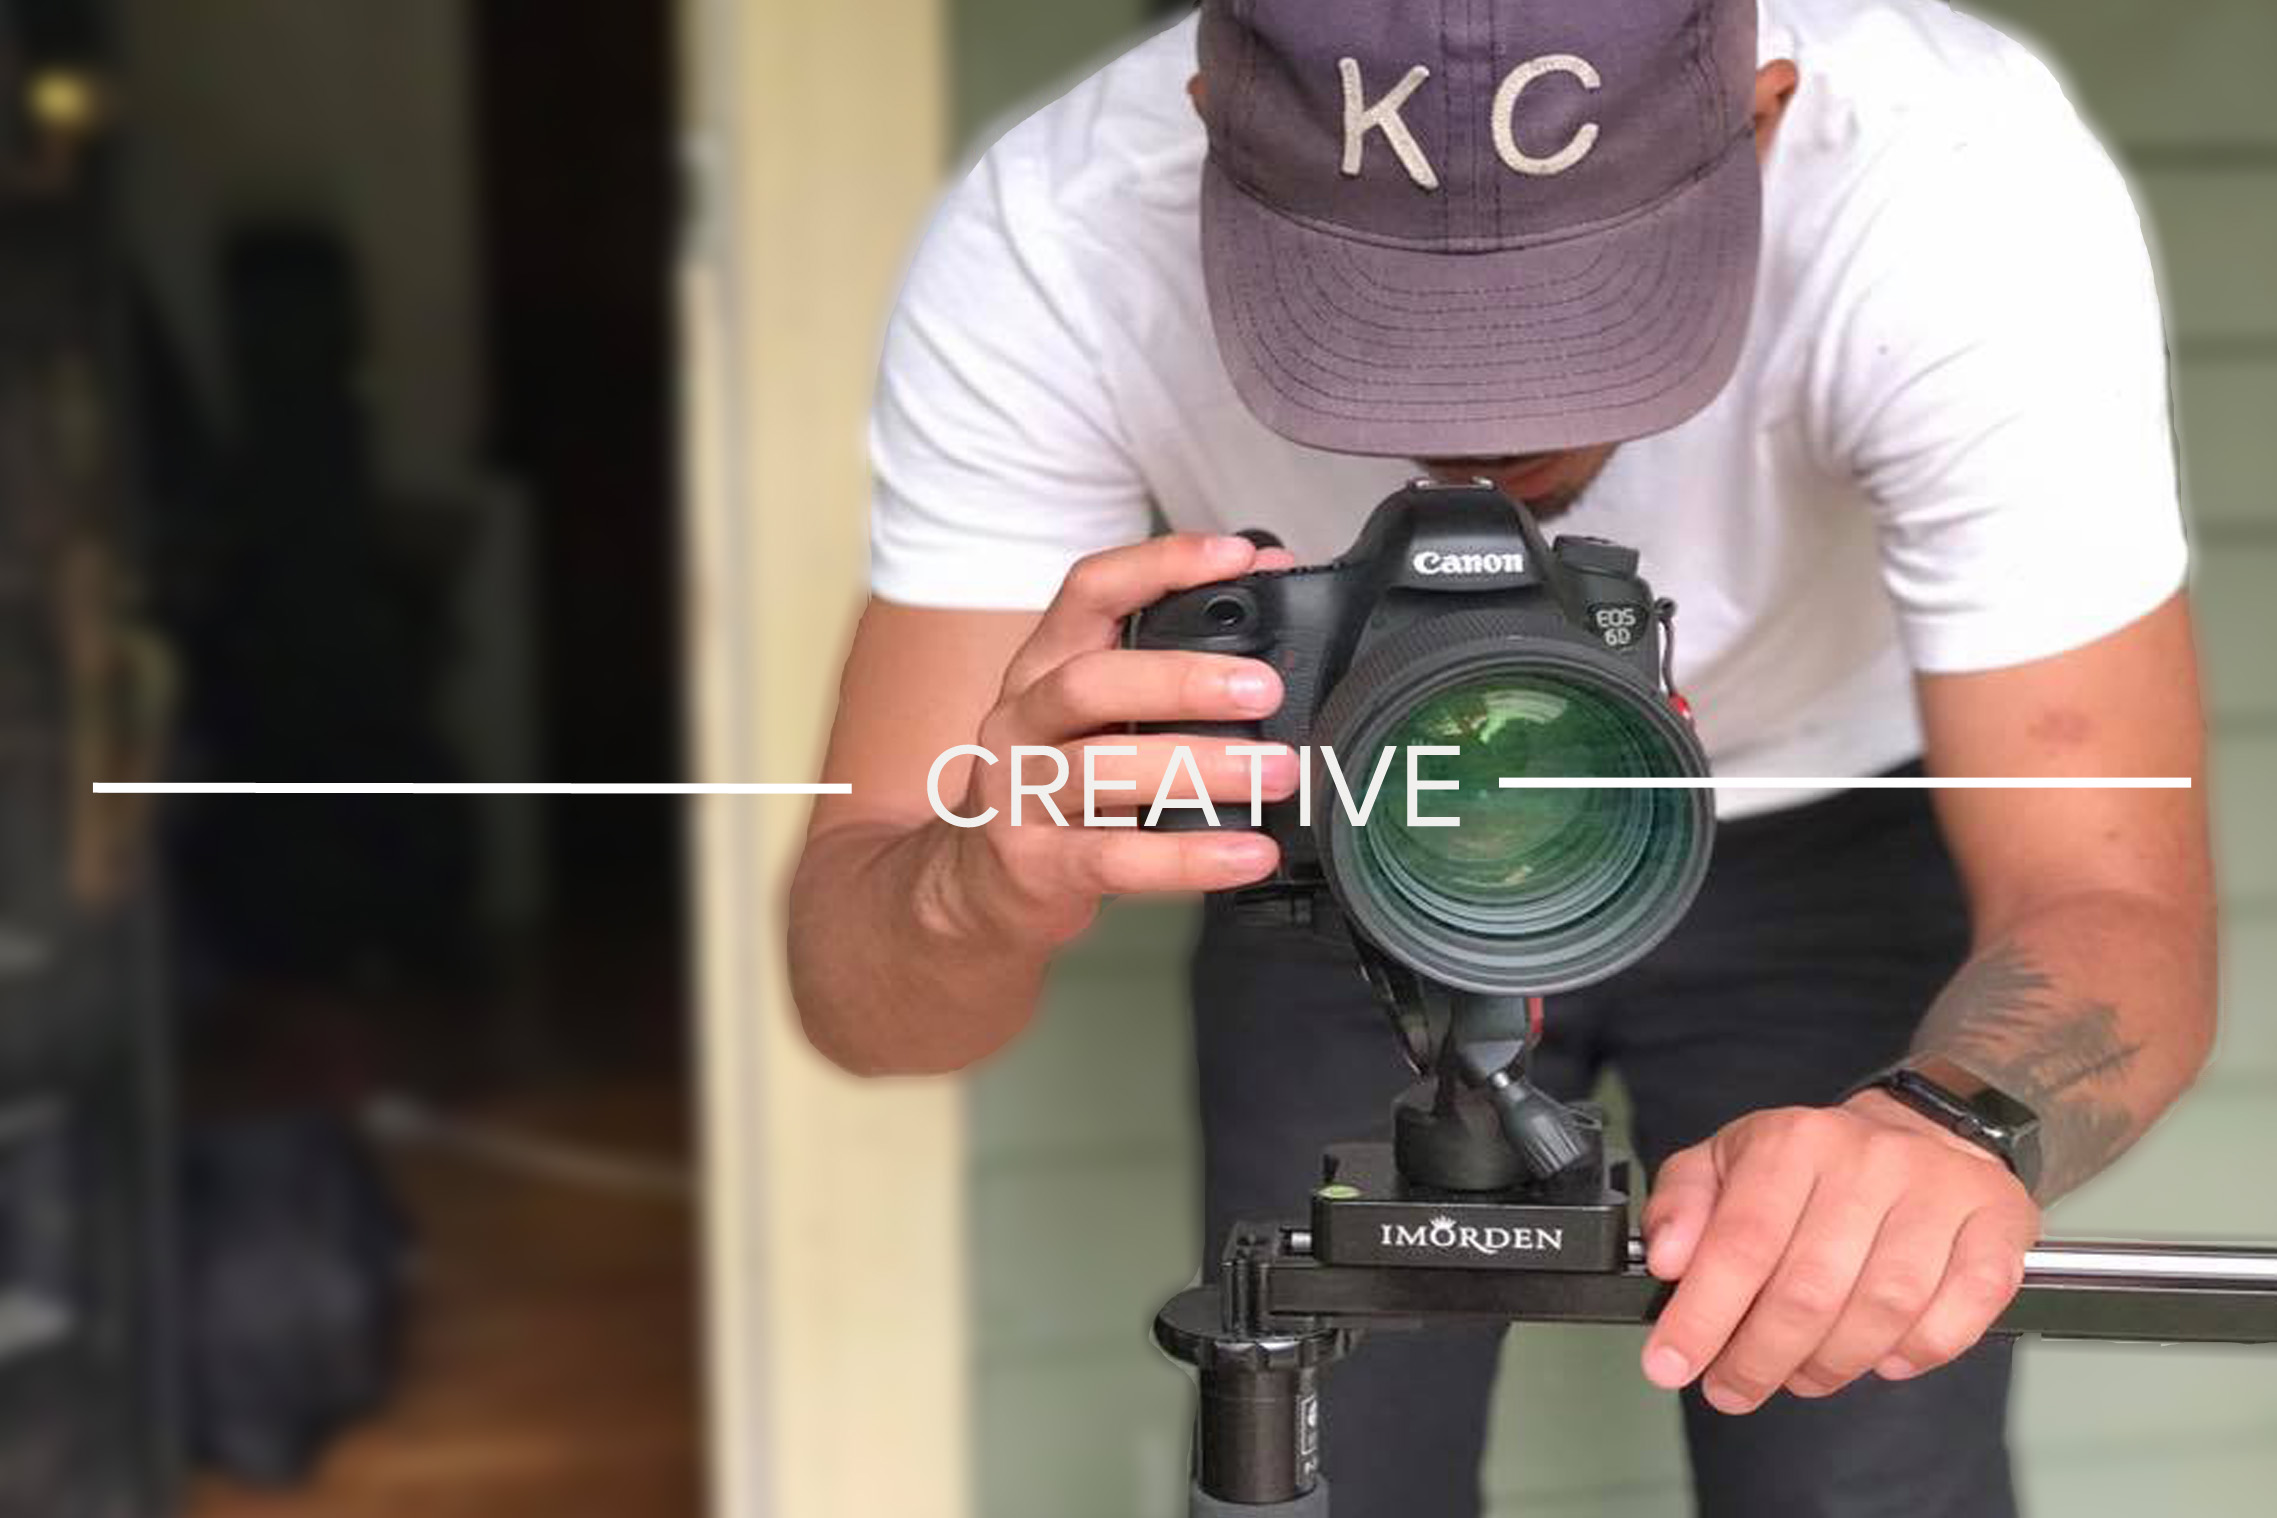 CREATIVE - This team gets the word out to the church through social media, web design, print, photography, and other creative avenues.